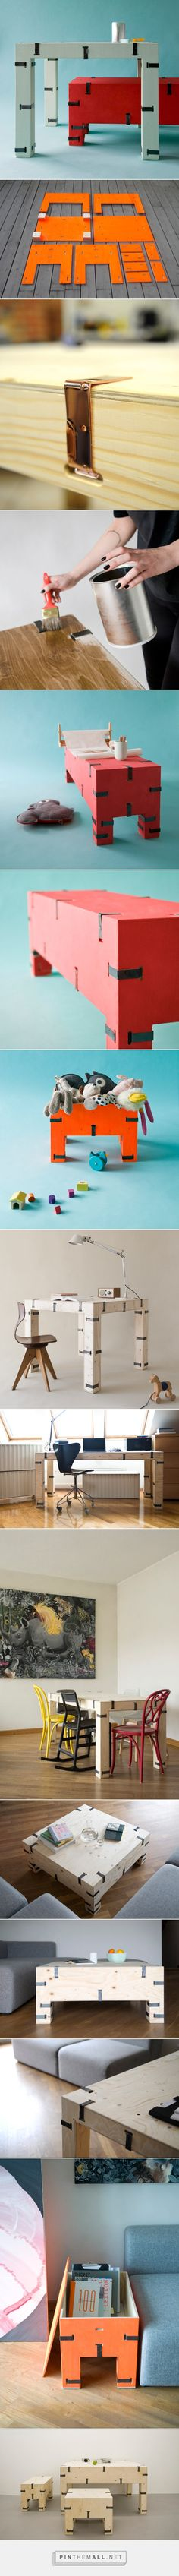 Pakiet: A Collection of Simple, Easy to Assemble Furniture - Design Milk - created via http://pinthemall.net